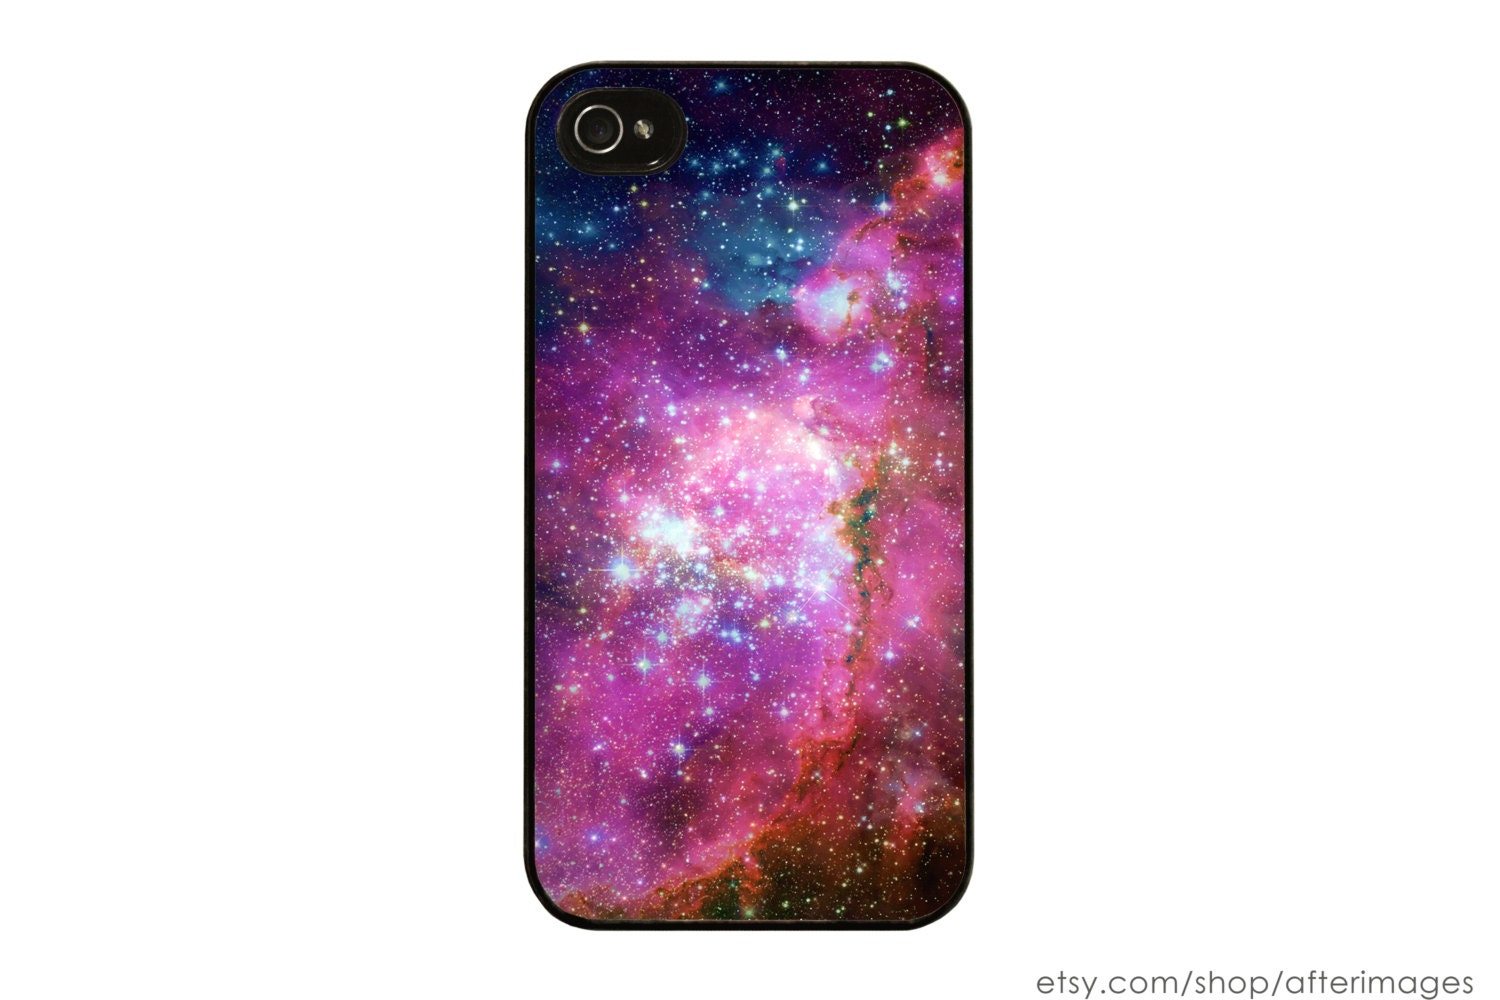 iPhone speck phone cases iphone 5 : Cheap Cellphone Cases: Space IPhone Case / IPhone 4 Case IPhone 4S ...